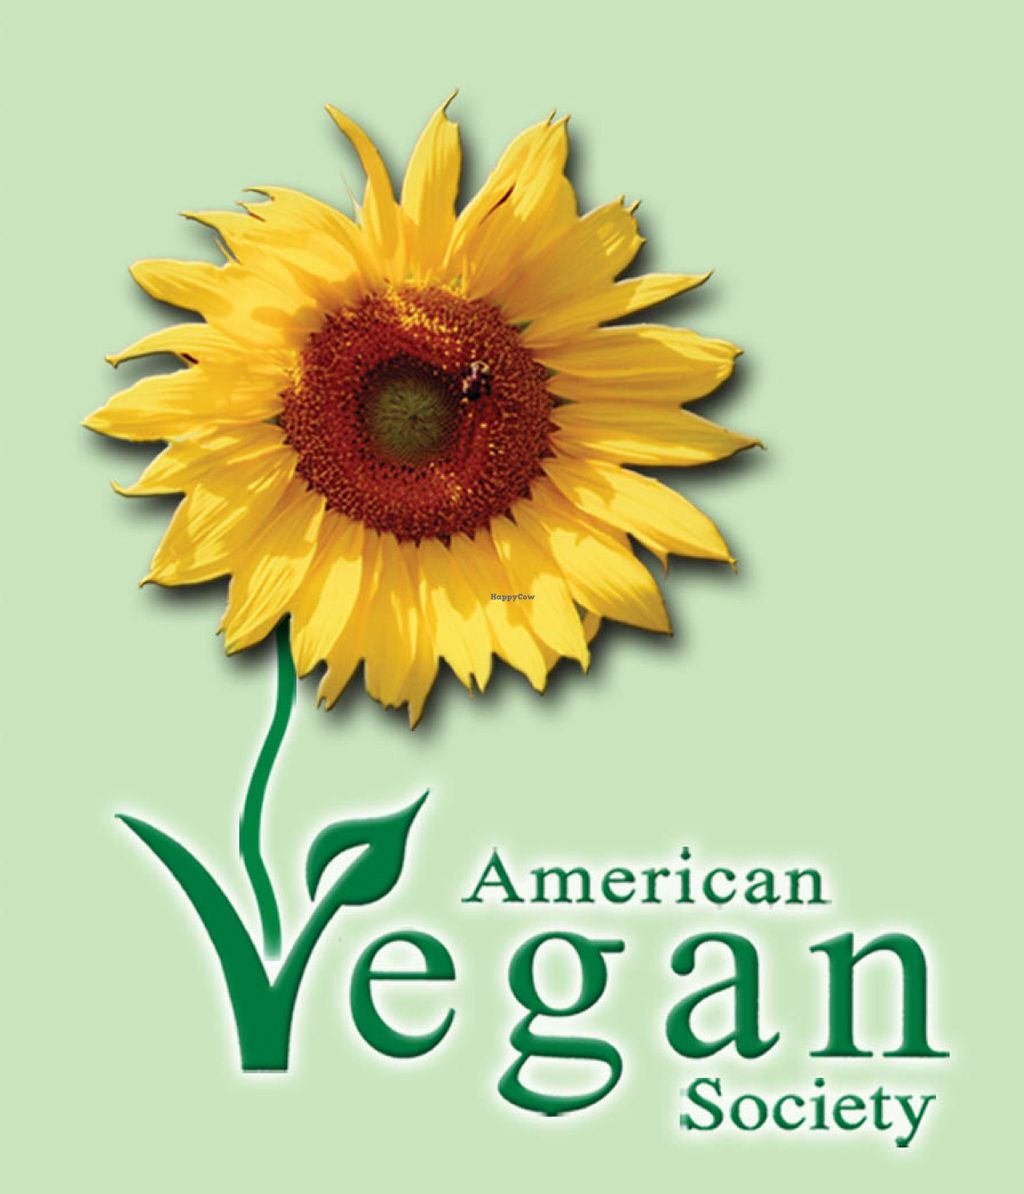 "Photo of American Vegan Society  by <a href=""/members/profile/American%20Vegan"">American Vegan</a> <br/>AVS logo <br/> June 26, 2016  - <a href='/contact/abuse/image/39304/156202'>Report</a>"